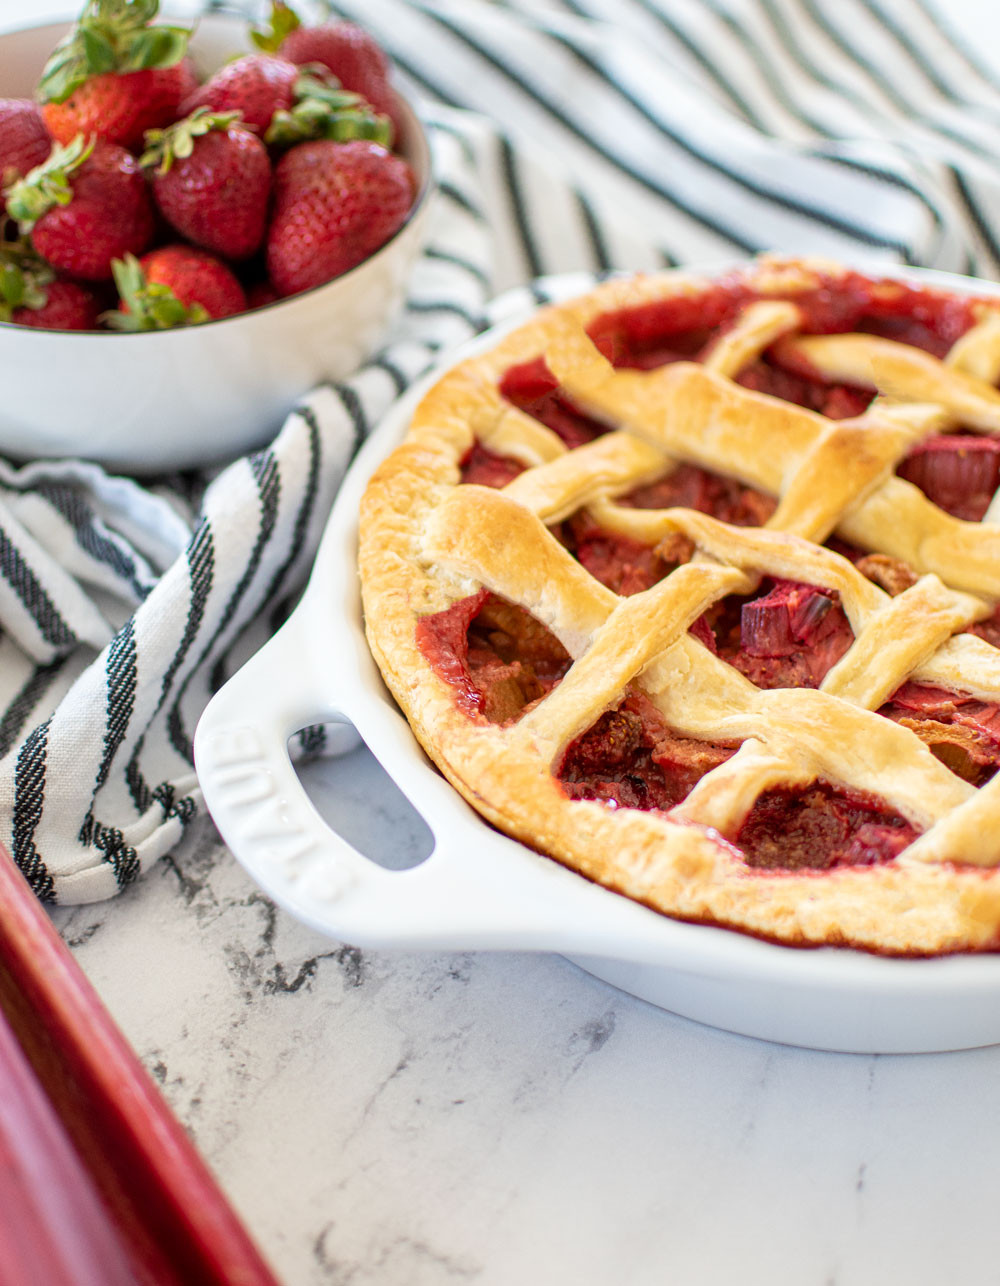 From scratch Strawberry Rhubarb Pie recipe using fresh rhubarb and fresh strawberries. This eggless Strawberry Rhubarb Pie recipe is so easy to make and you'll love sharing this with your family this spring. I use a milk wash instead of an egg wash, so it makes this pie recipe eggless. #egglesspie #organicpie #strawberryrhubarb #strawberryrhubarbpie #homemadepie #fromscratch #fromscratchpie